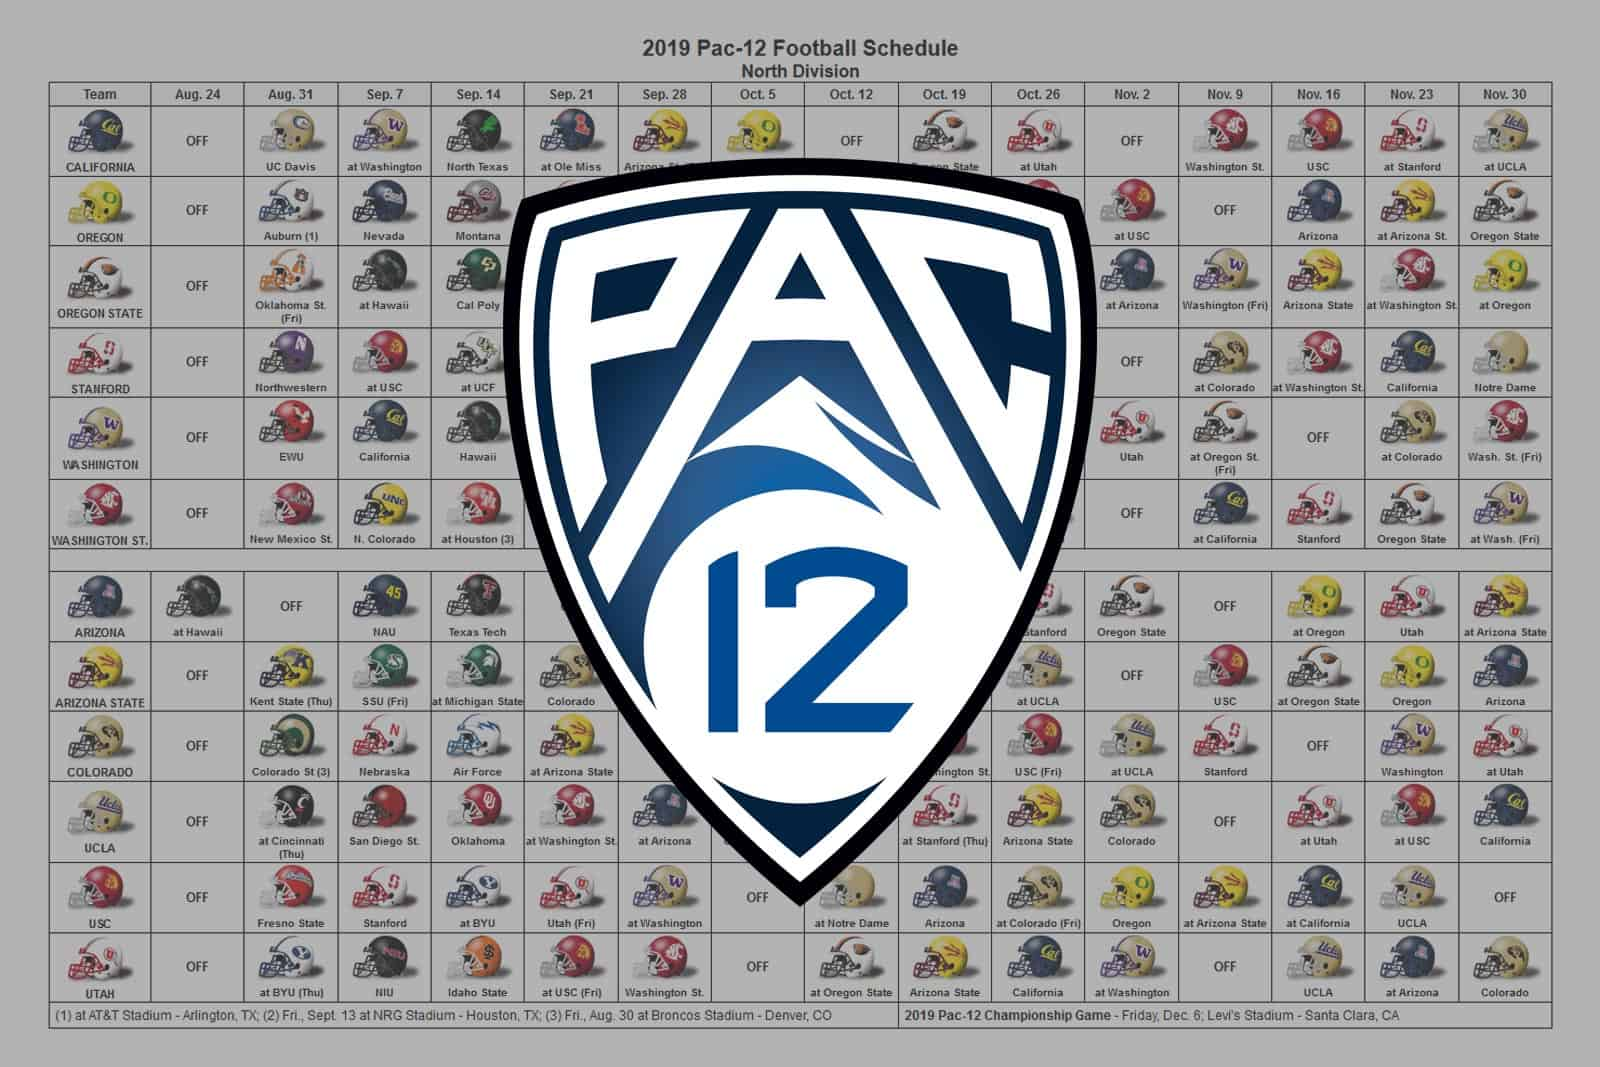 2019 Pac-12 Football Helmet Schedule